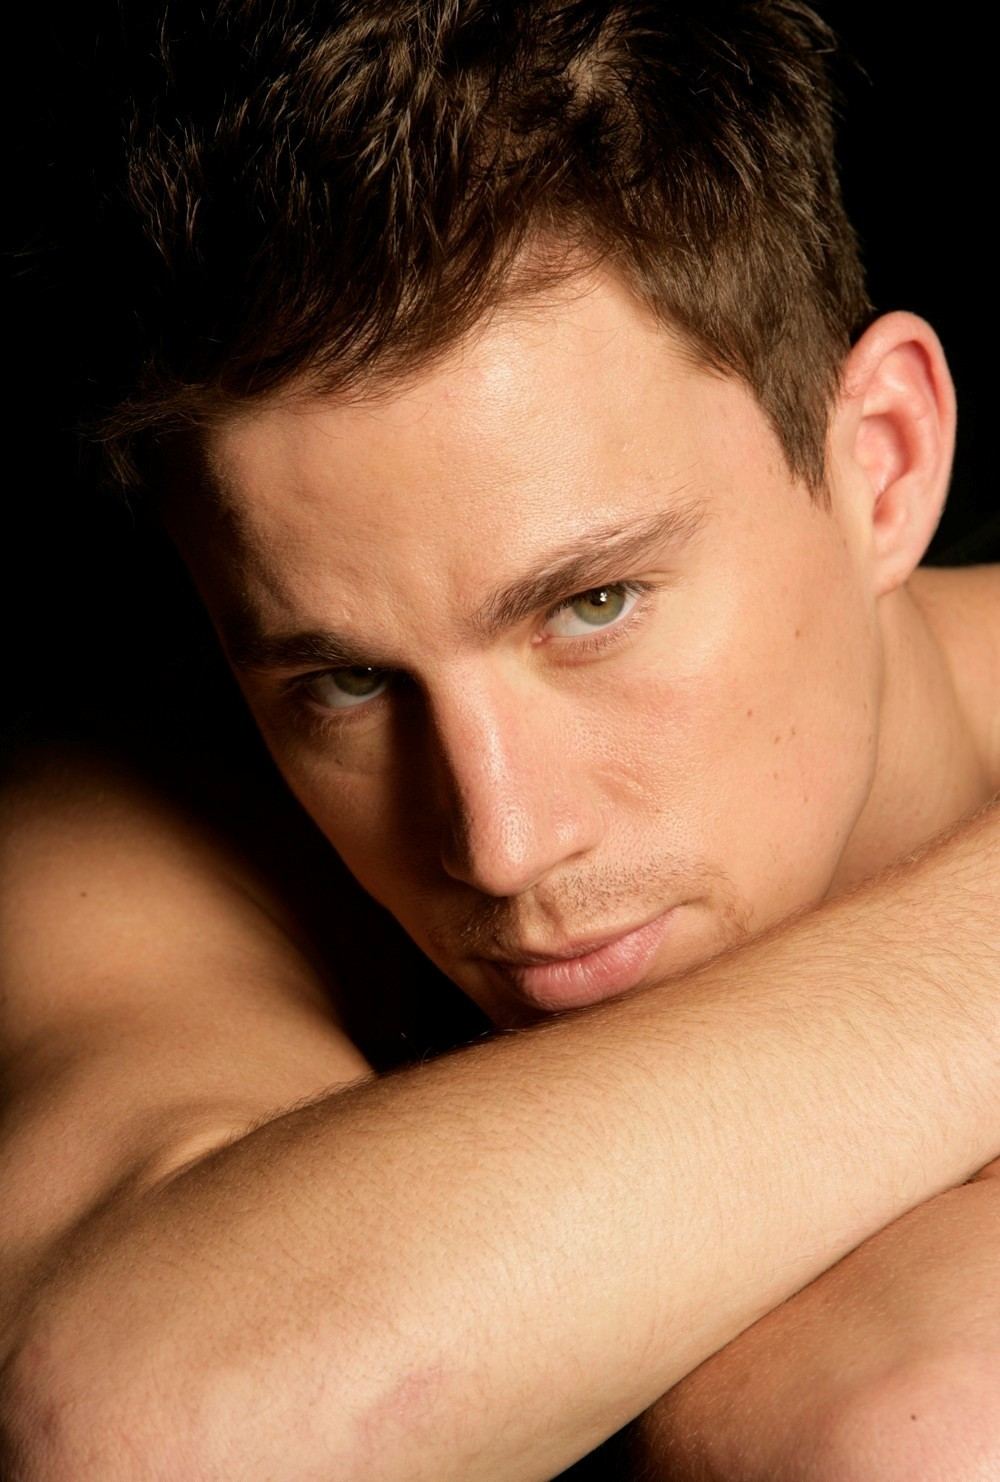 Channing Tatum - Channing Tatum Photo (20369892) - Fanpop Channing Tatum